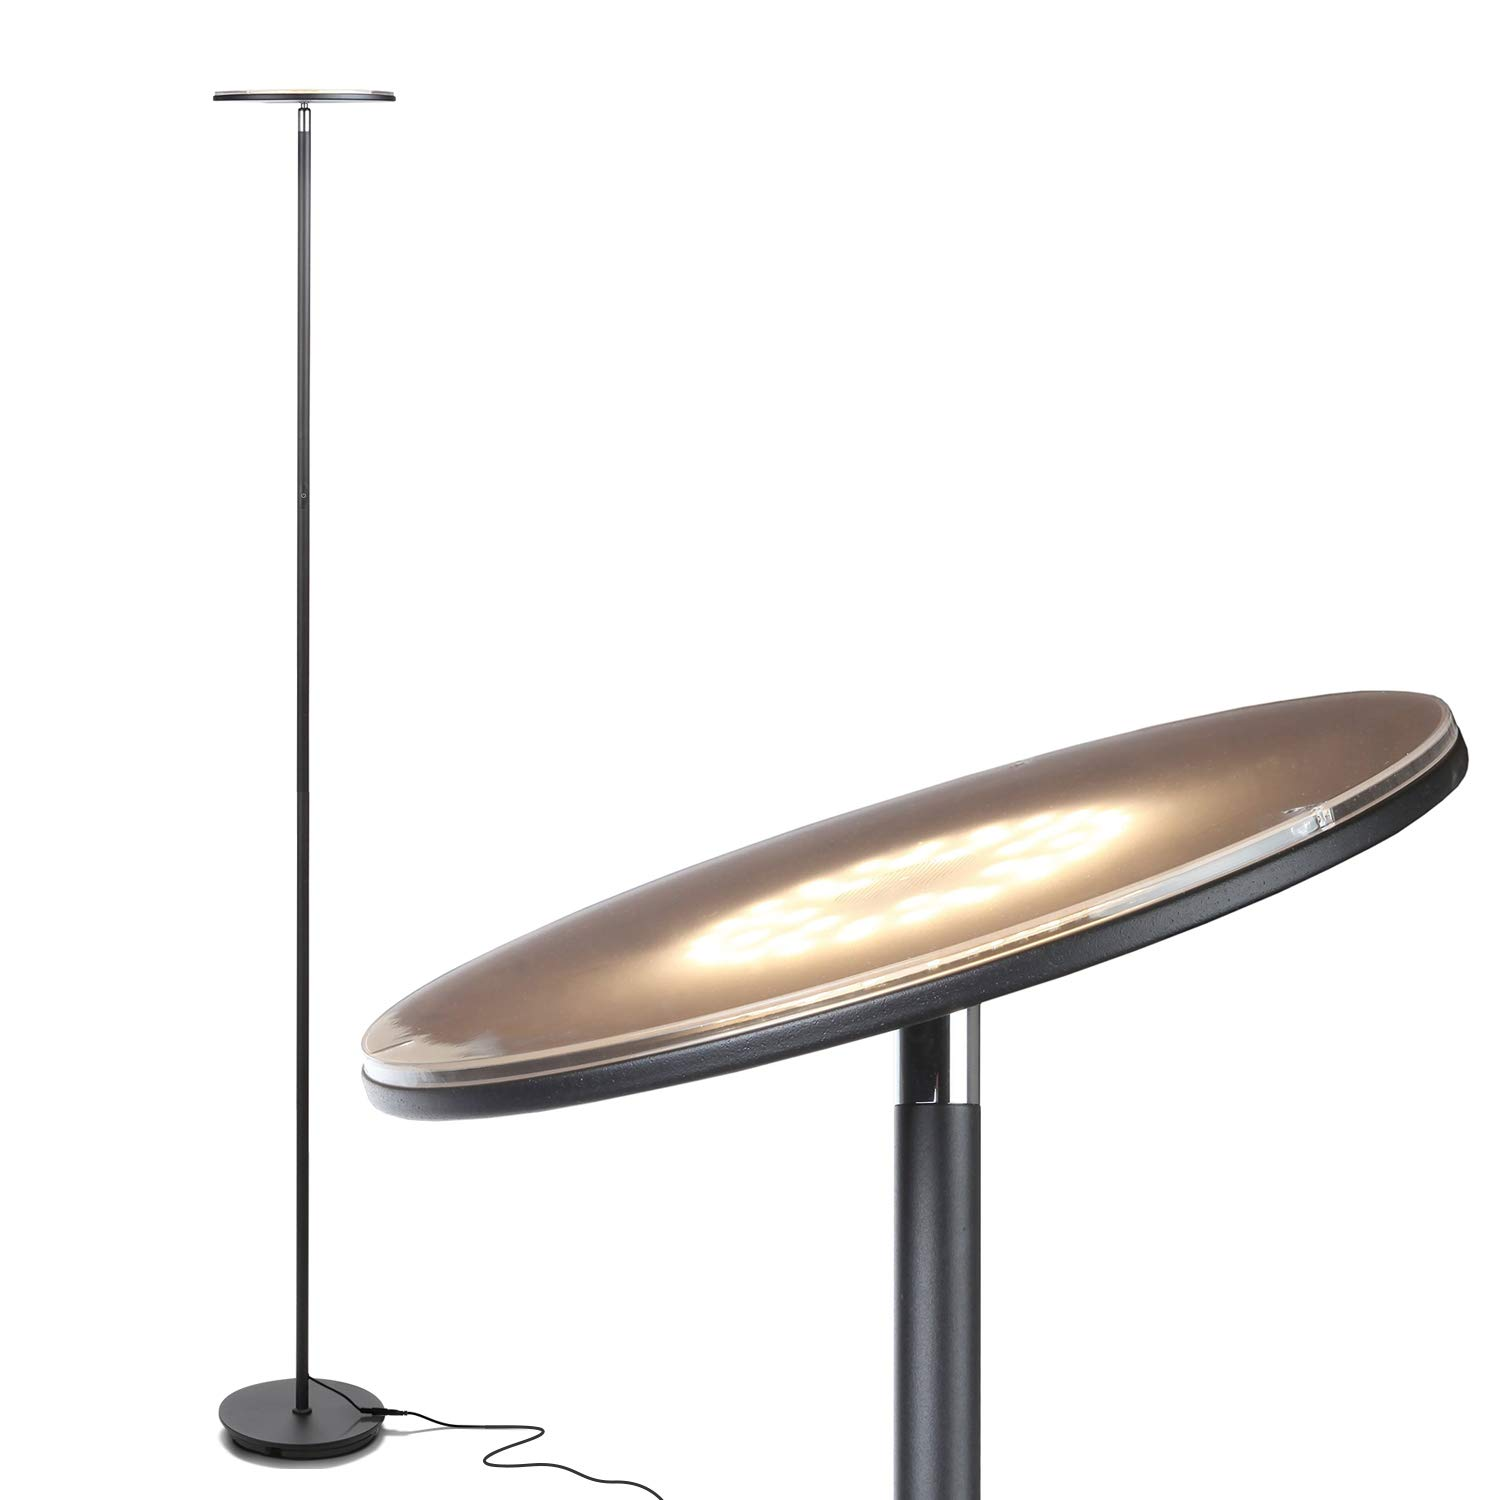 Brightech Sky LED Torchiere Super Bright Floor Lamp - Tall Standing Modern Pole Light for Living Rooms & Offices - Dimmable Uplight for Reading Books in Your Bedroom etc - Black by Brightech